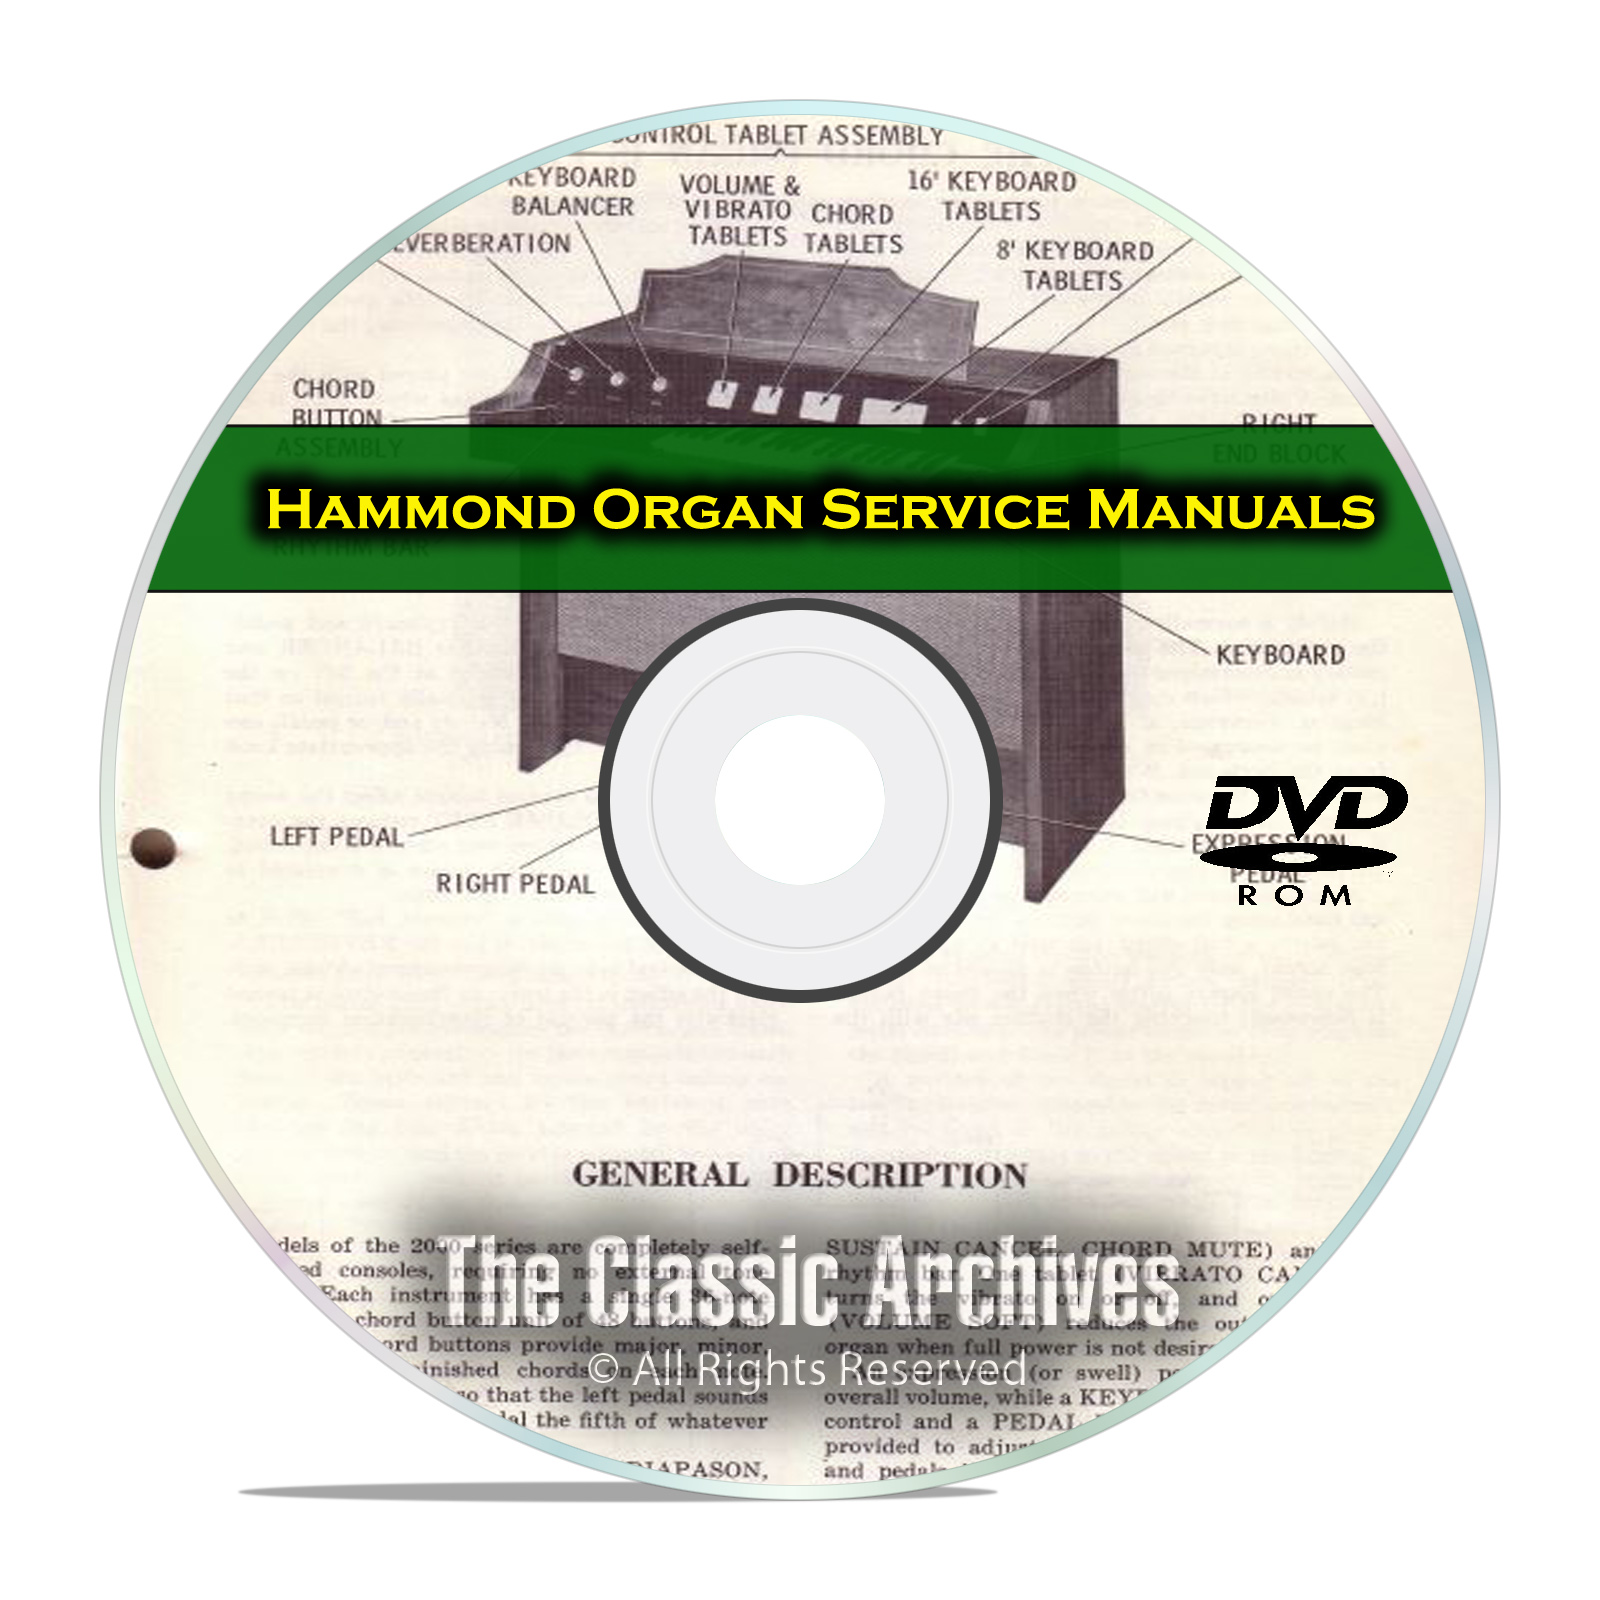 32 Service & Repair Manuals, Hammond Organ, Restoration, Guide Books DVD